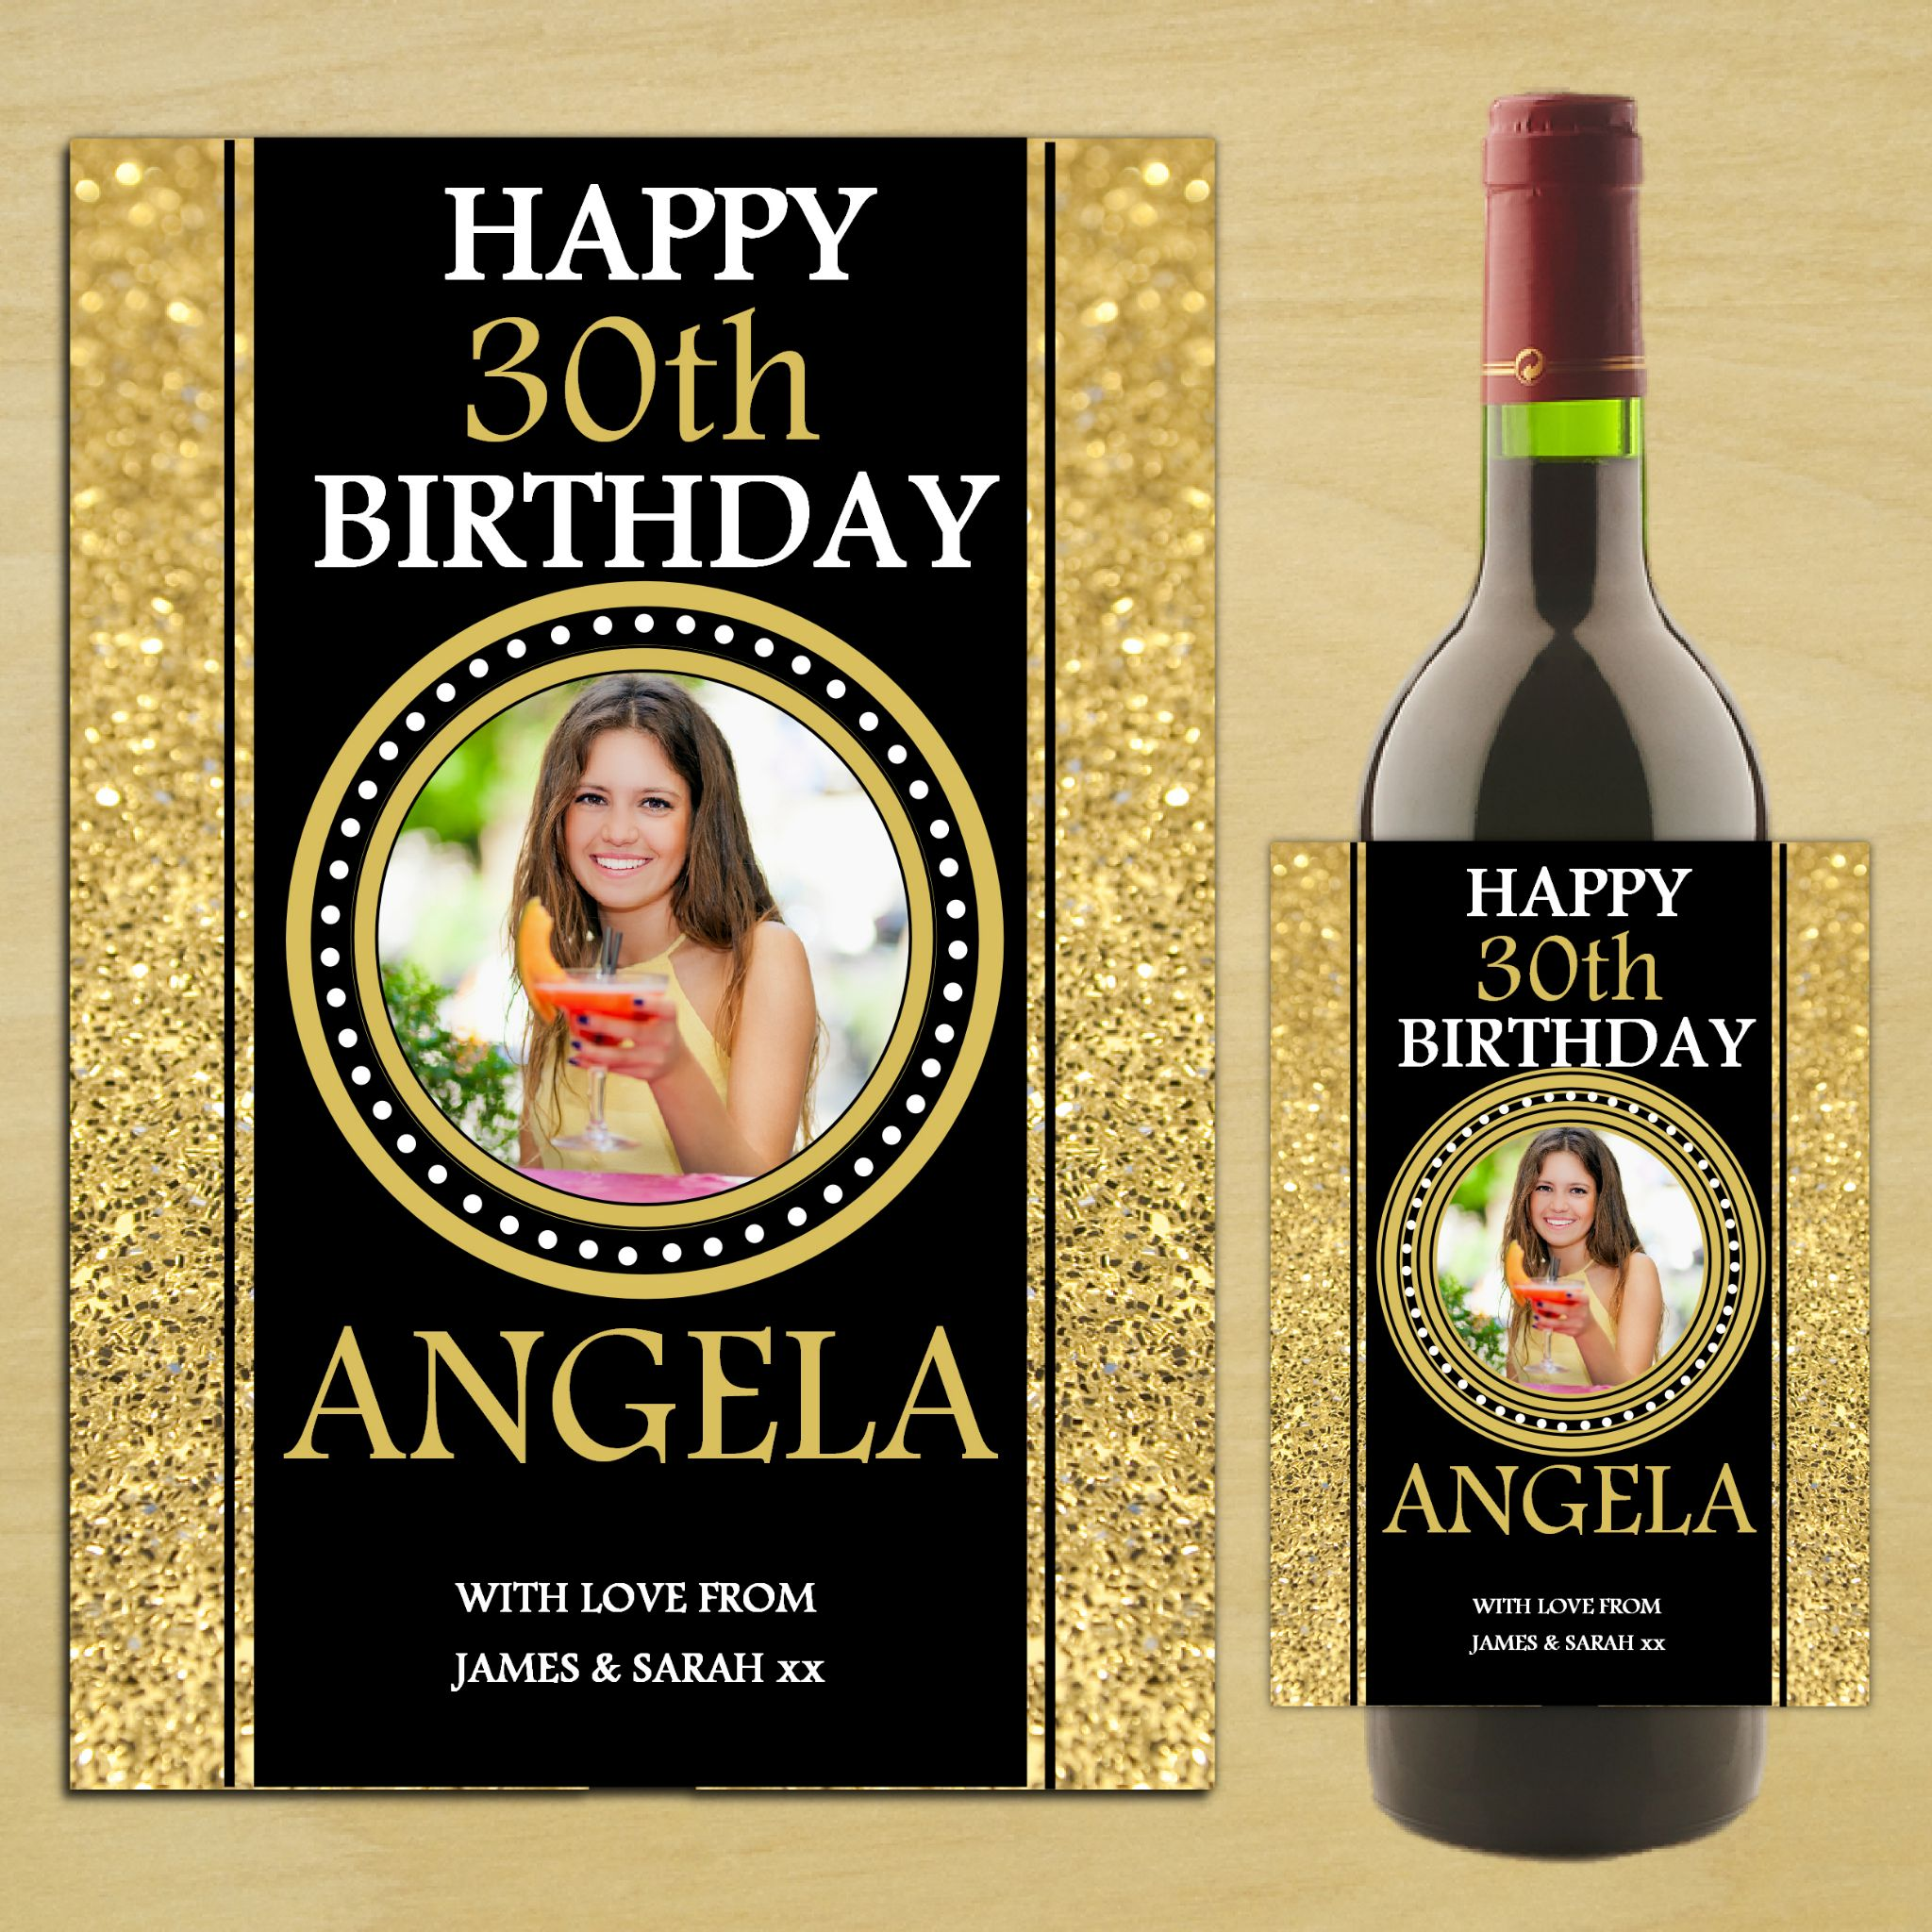 18th birthday wine labels ; personalised-happy-18th-21st-30th-40th-birthday-wine-champagne-bottle-photo-label-n84-any-age-14501-p